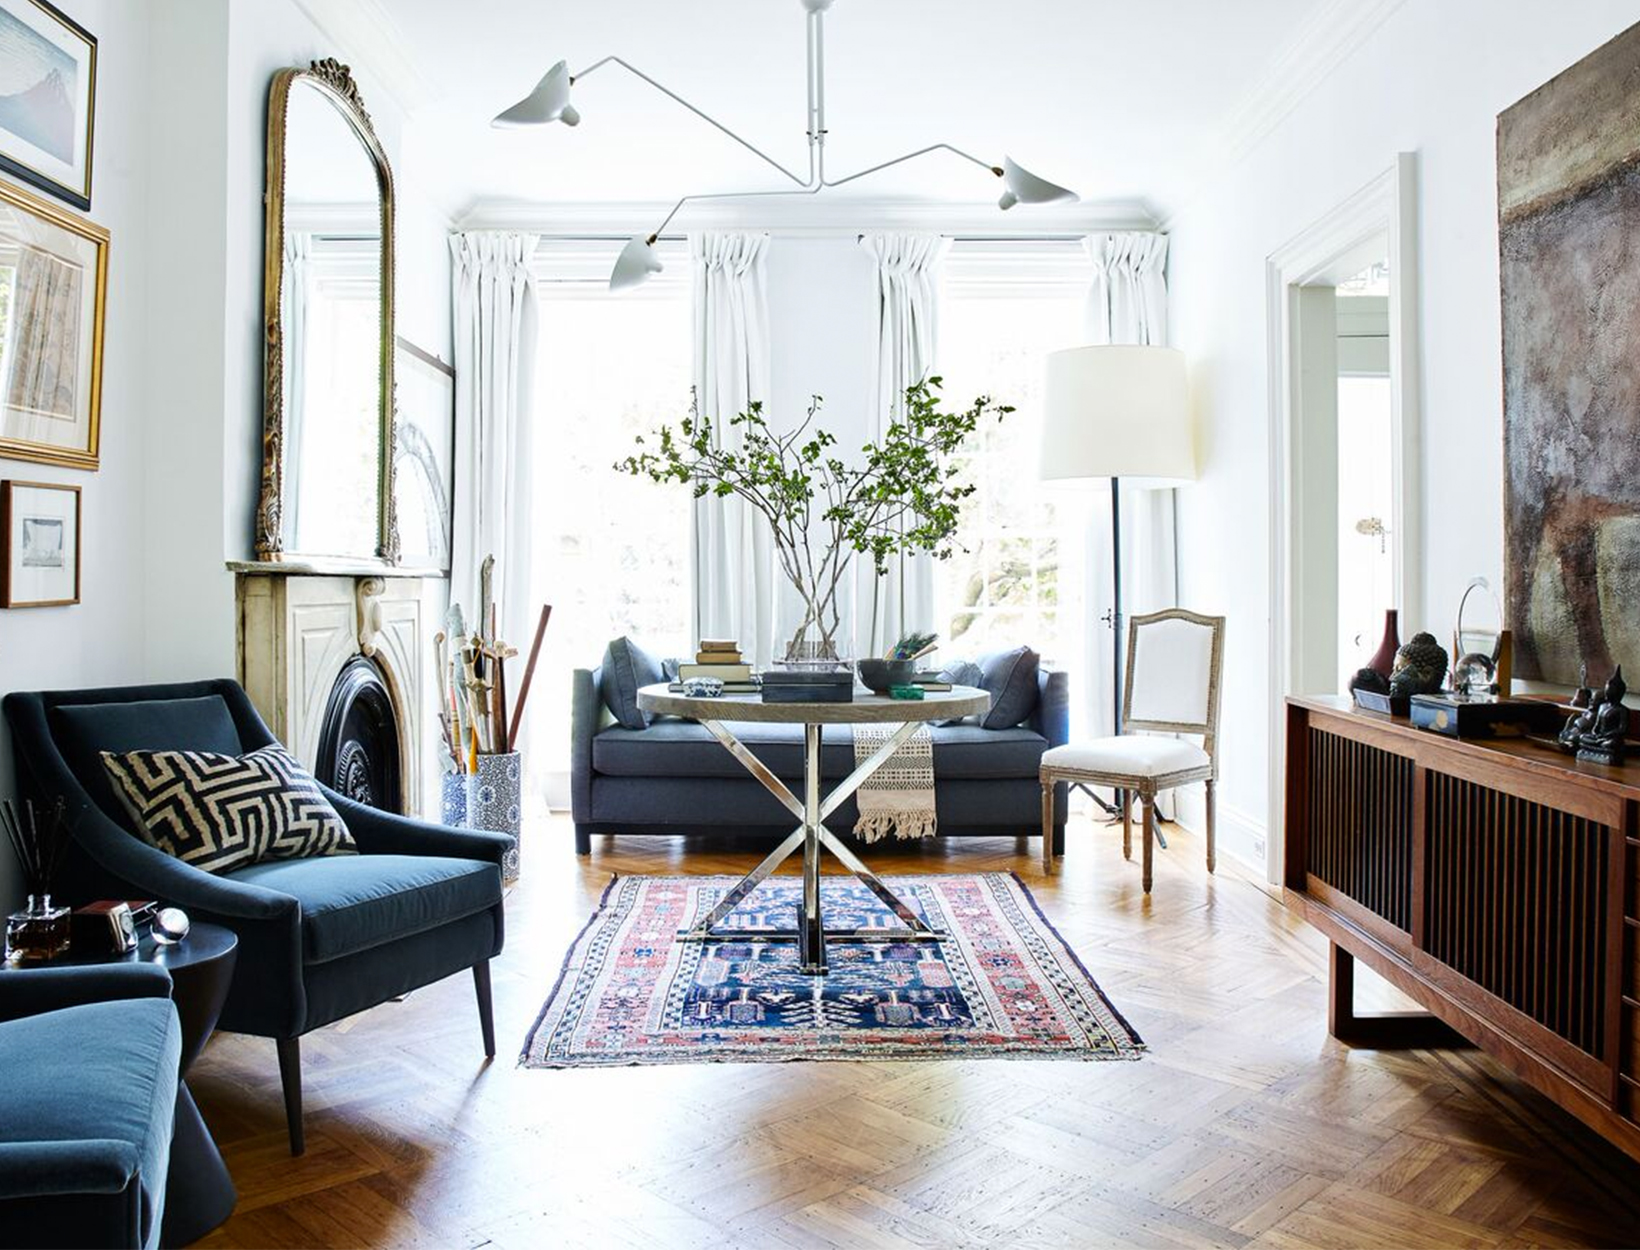 Tips for Making a Living Room Feel More Livable | Goop